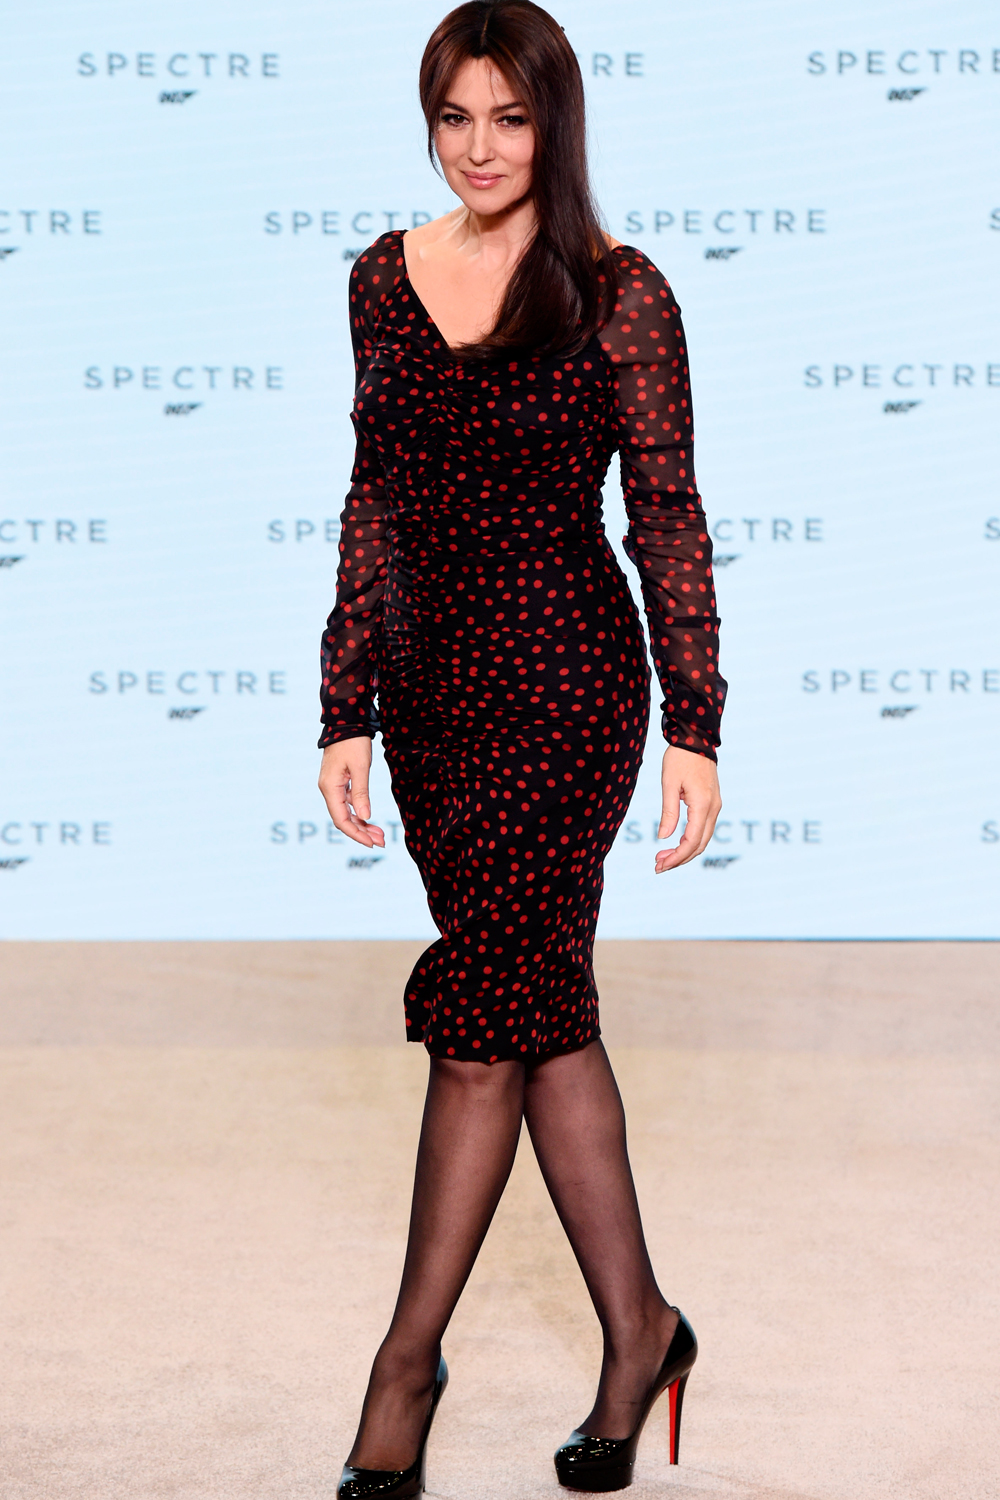 Terrific James Bond Spectre Cast Announced With The Oldest Bond Girl In Short Hairstyles Gunalazisus